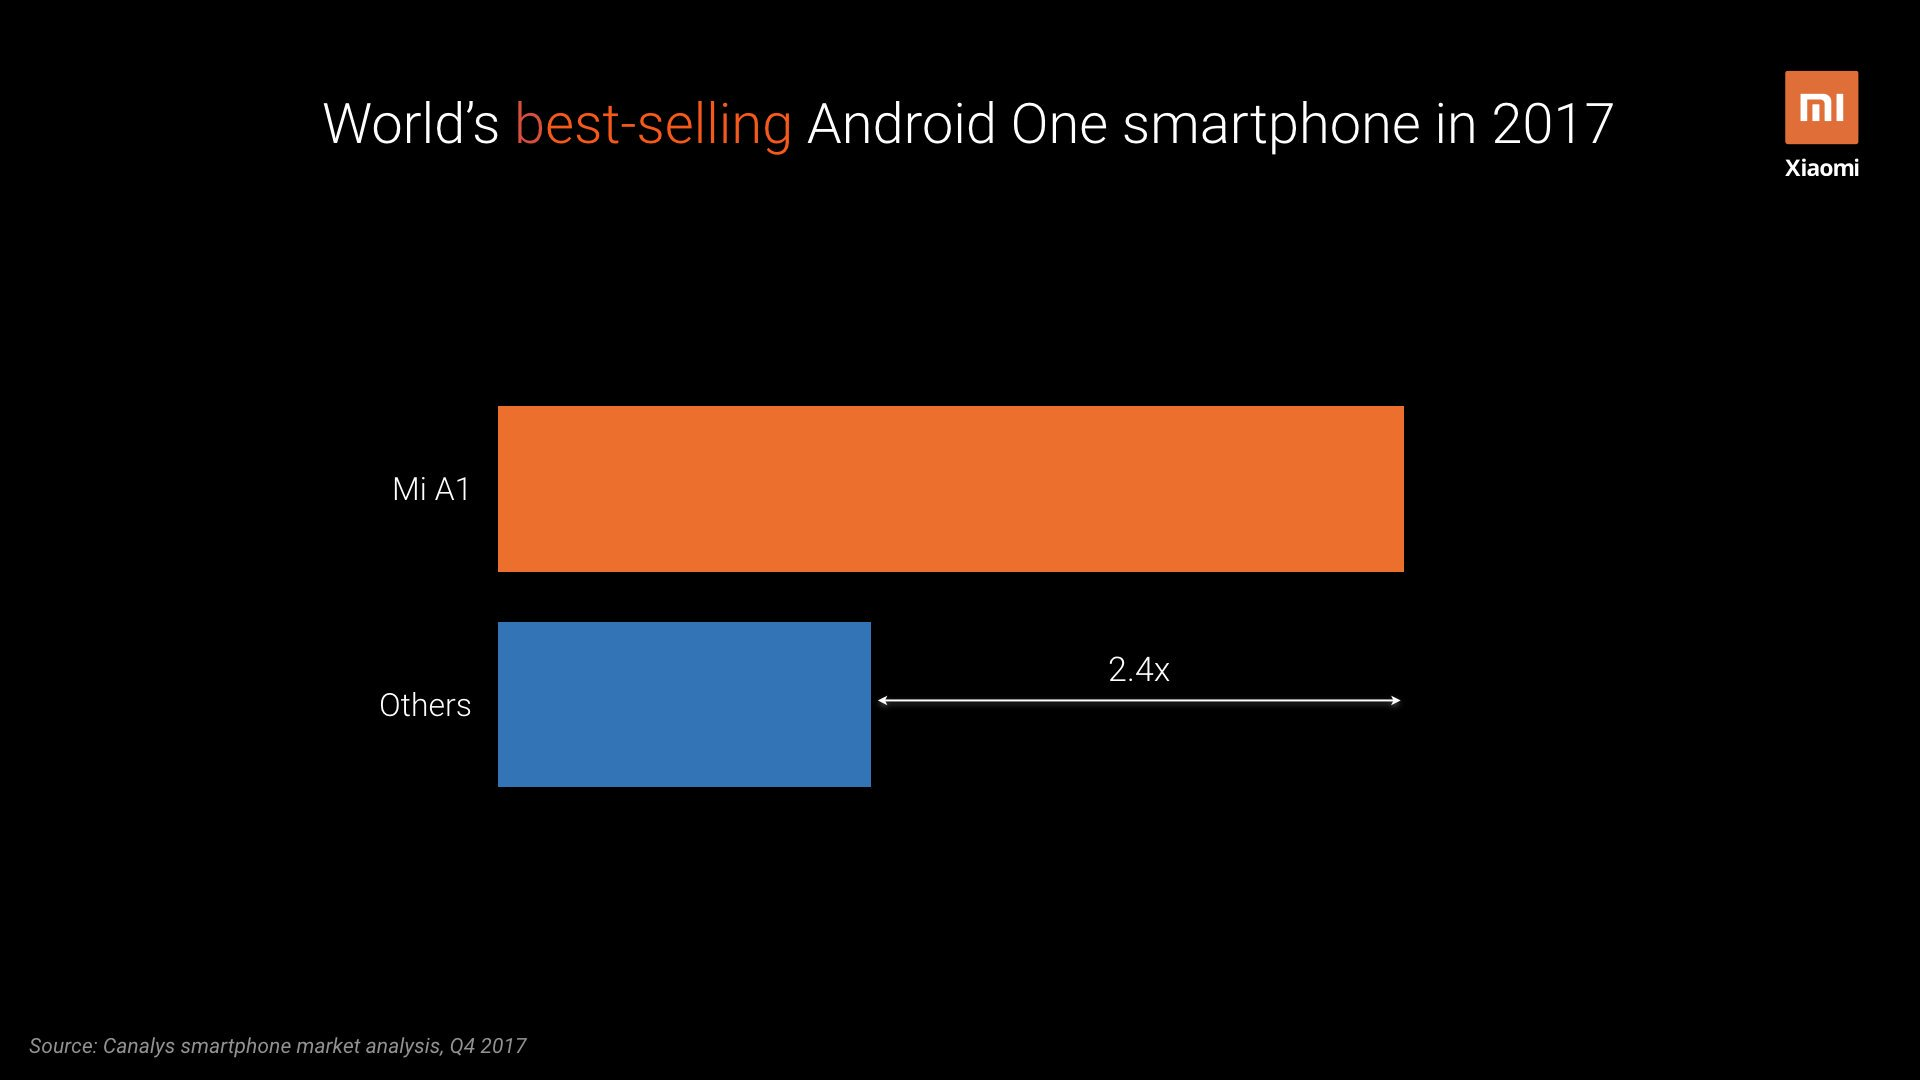 Xiaomi Mi A-series models are the top-selling Android One